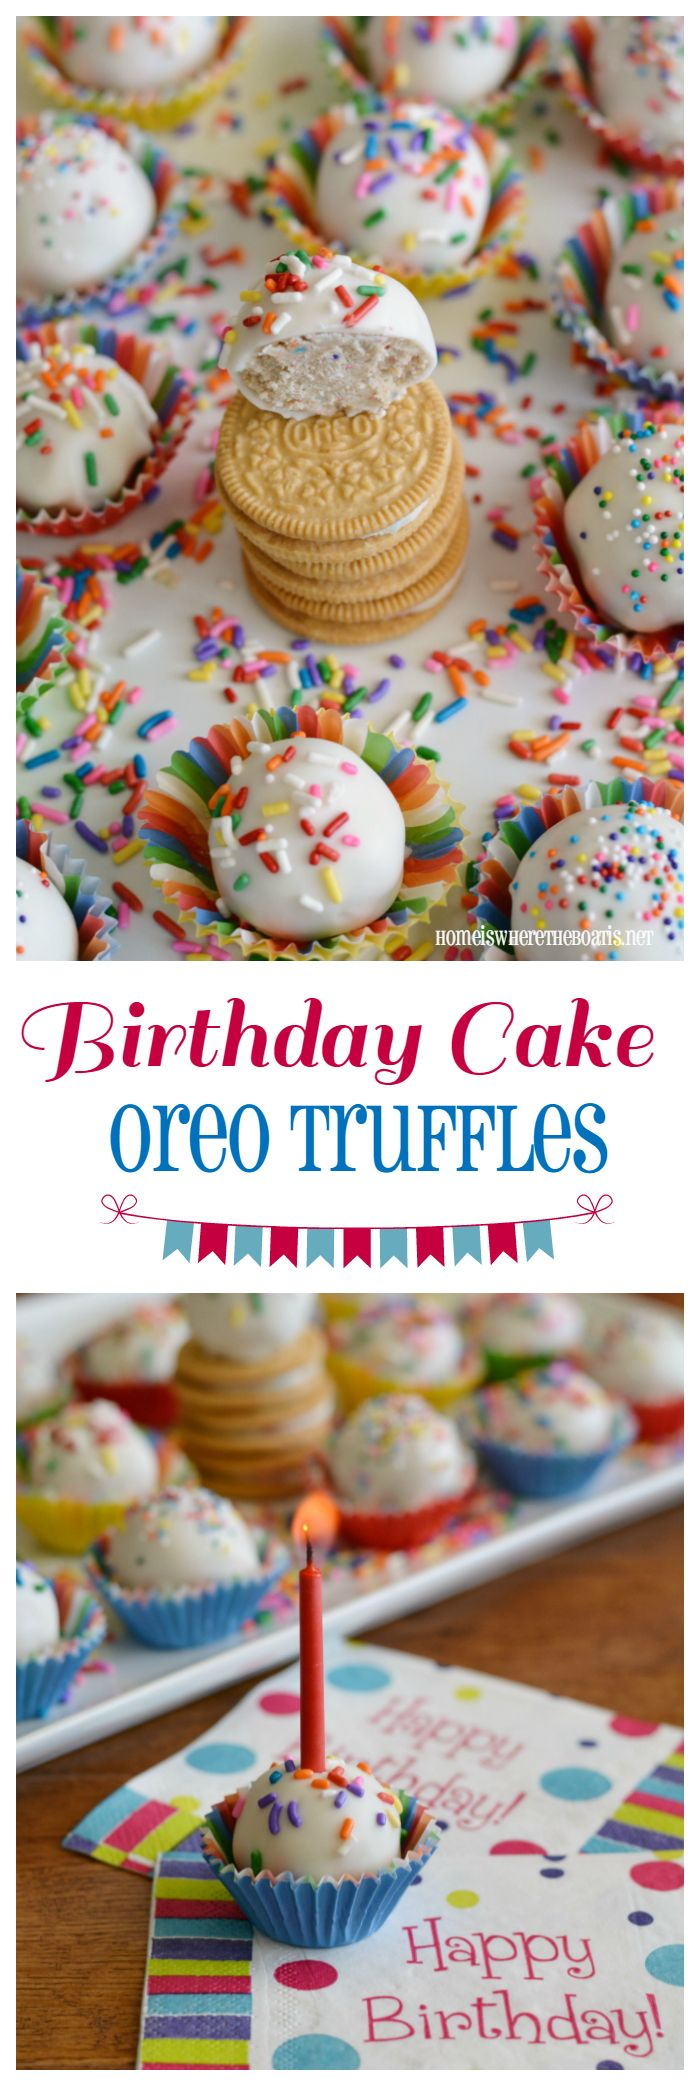 Birthday Cake Oreo Truffles! No-bake treats that are a piece of cake to make! | homeiswheretheboatis.net